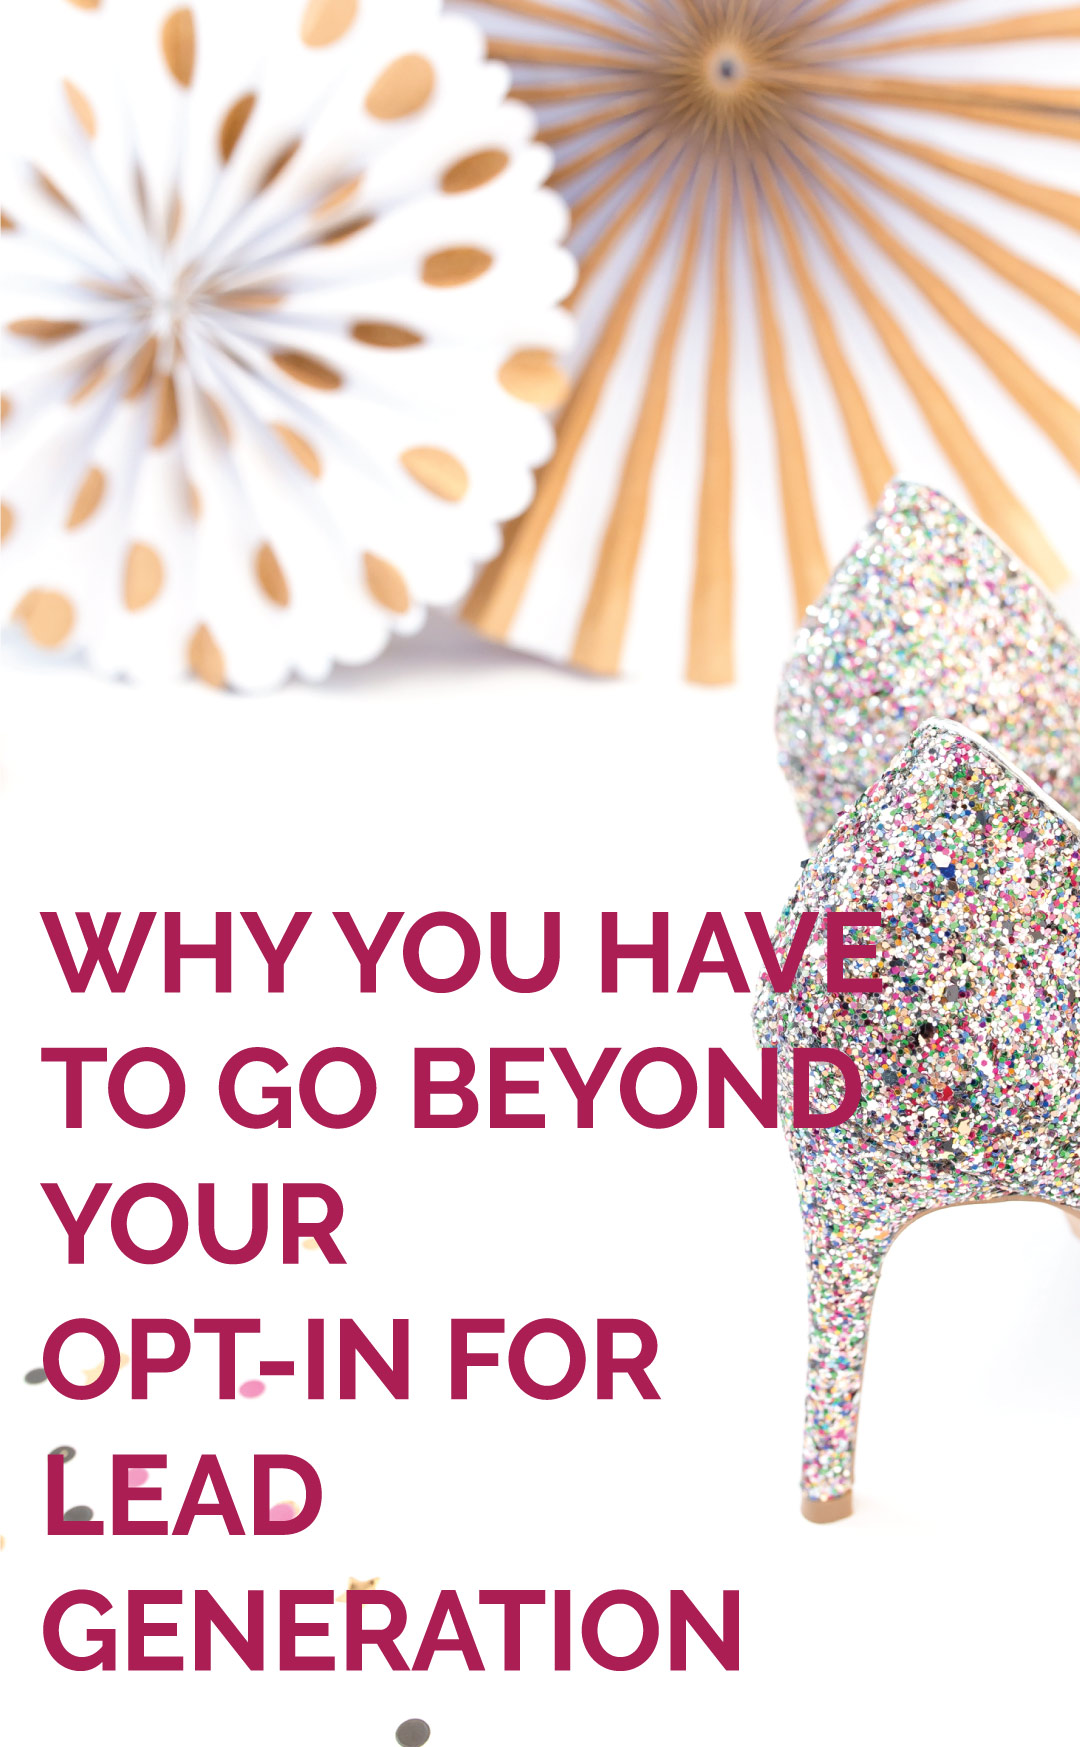 Are you an online entrepreneur? Do you want more leads for your business so that you can grow in 2018? Then you need to know why you have to go beyond your opt-in or lead magnet and create a nurturing funnel.